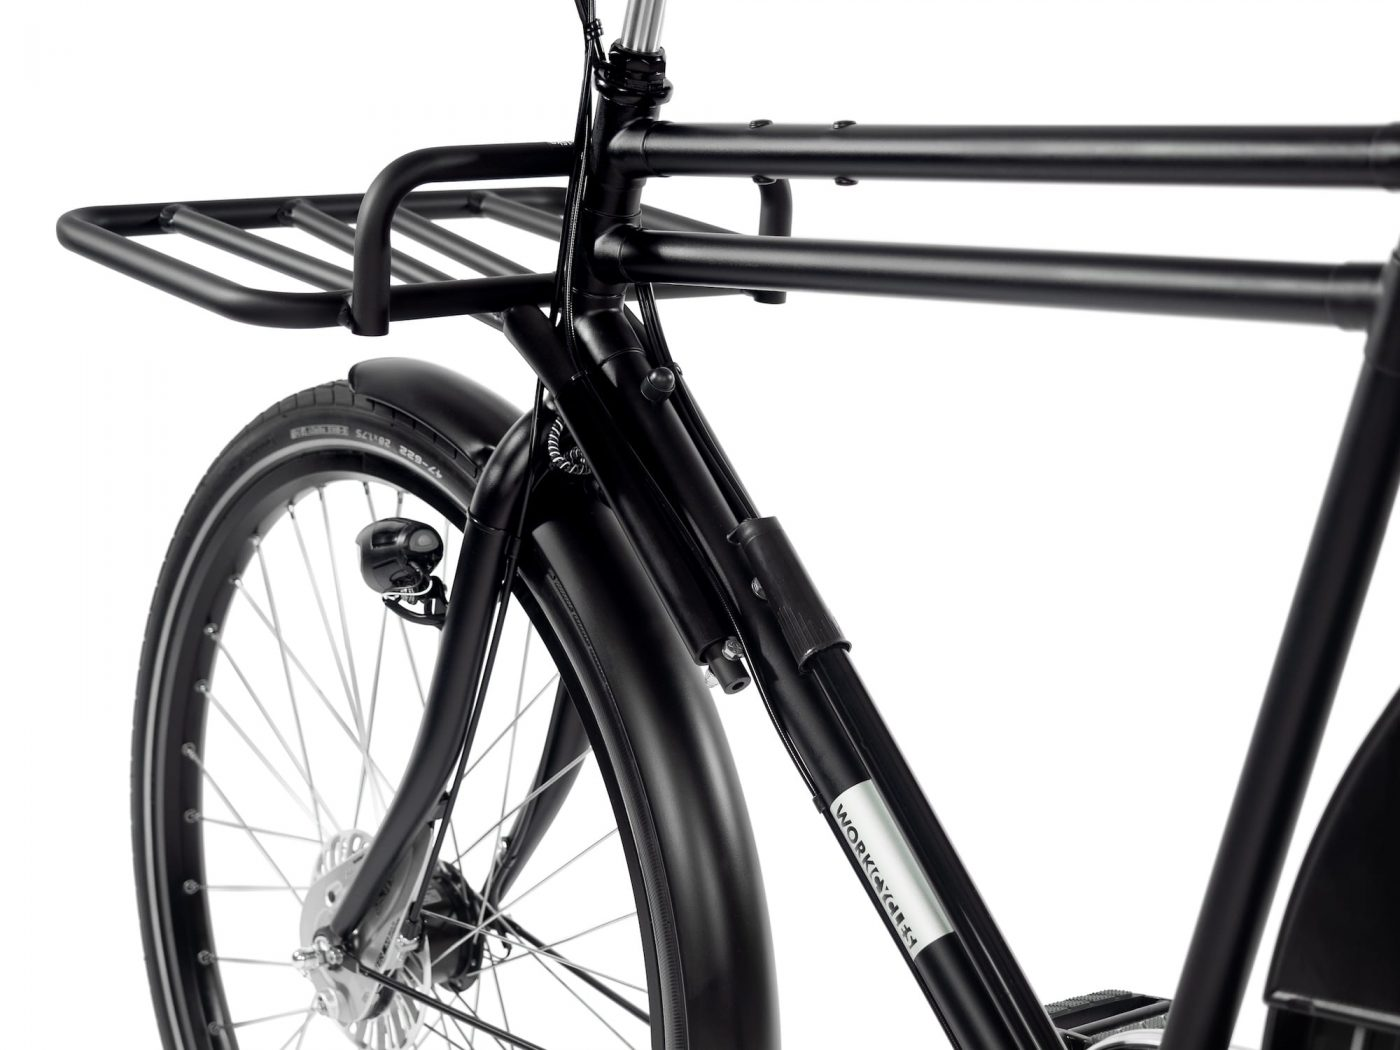 This incredibly handy rack is fixed to the frame so it can carry huge loads without influencing your bike's handling.